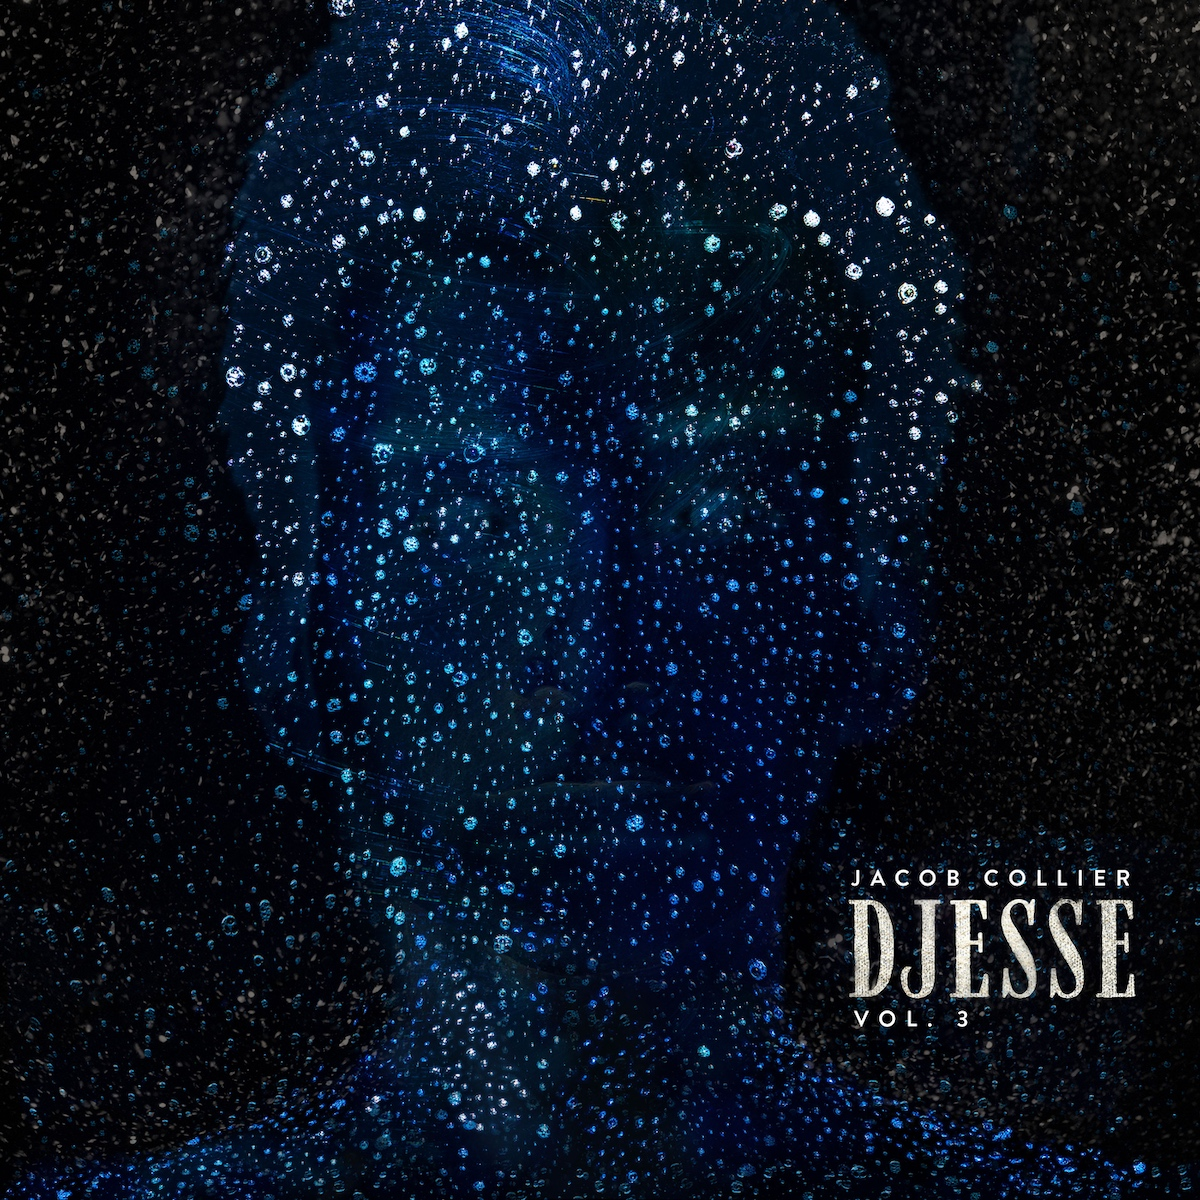 jacob collier djesse vol. 3 track by track new album stream